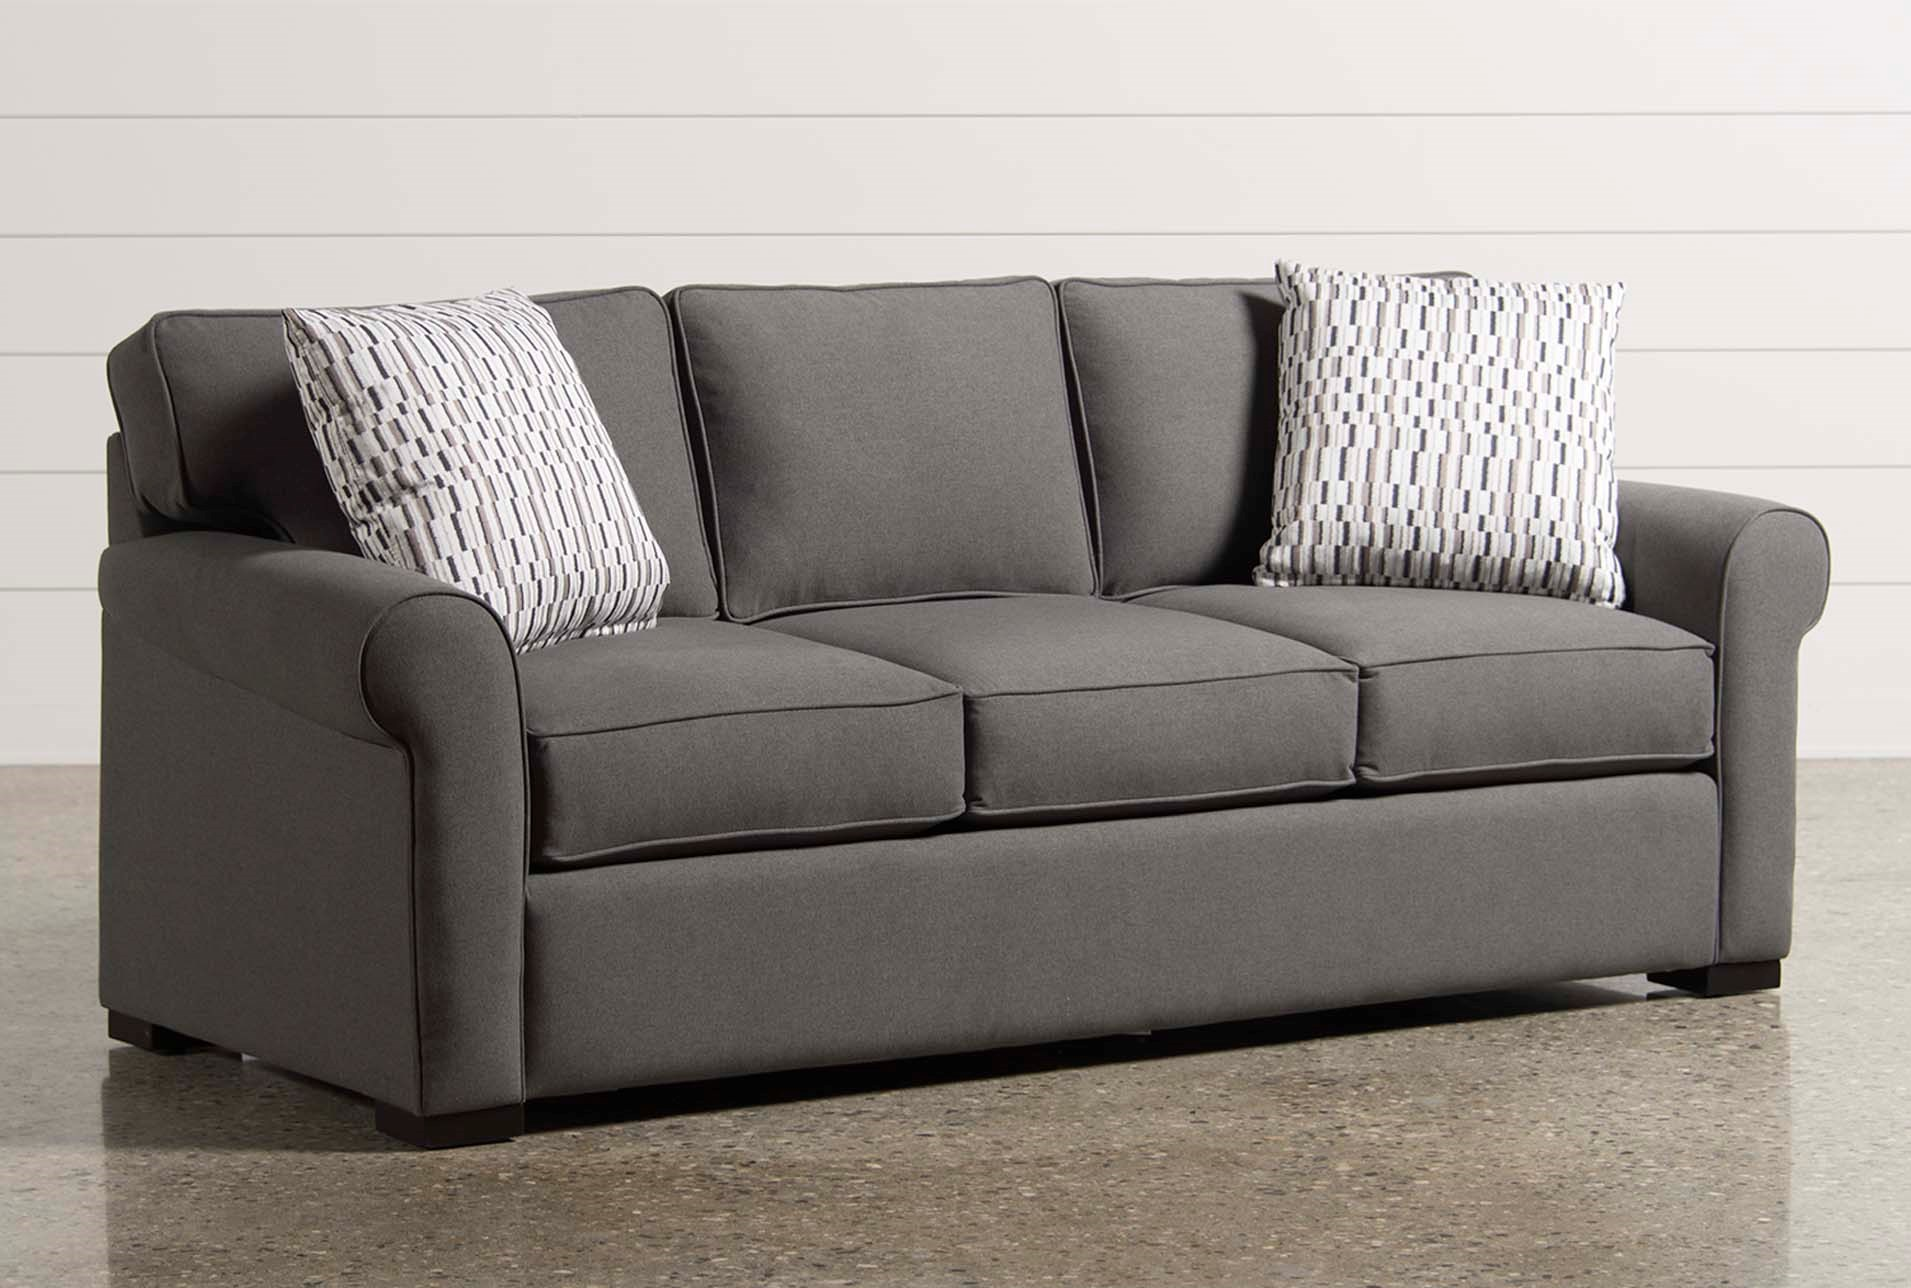 Mia Memory Foam Queen Sleeper Living Spaces ~ Queen Sleeper Sofa Dimensions When Open